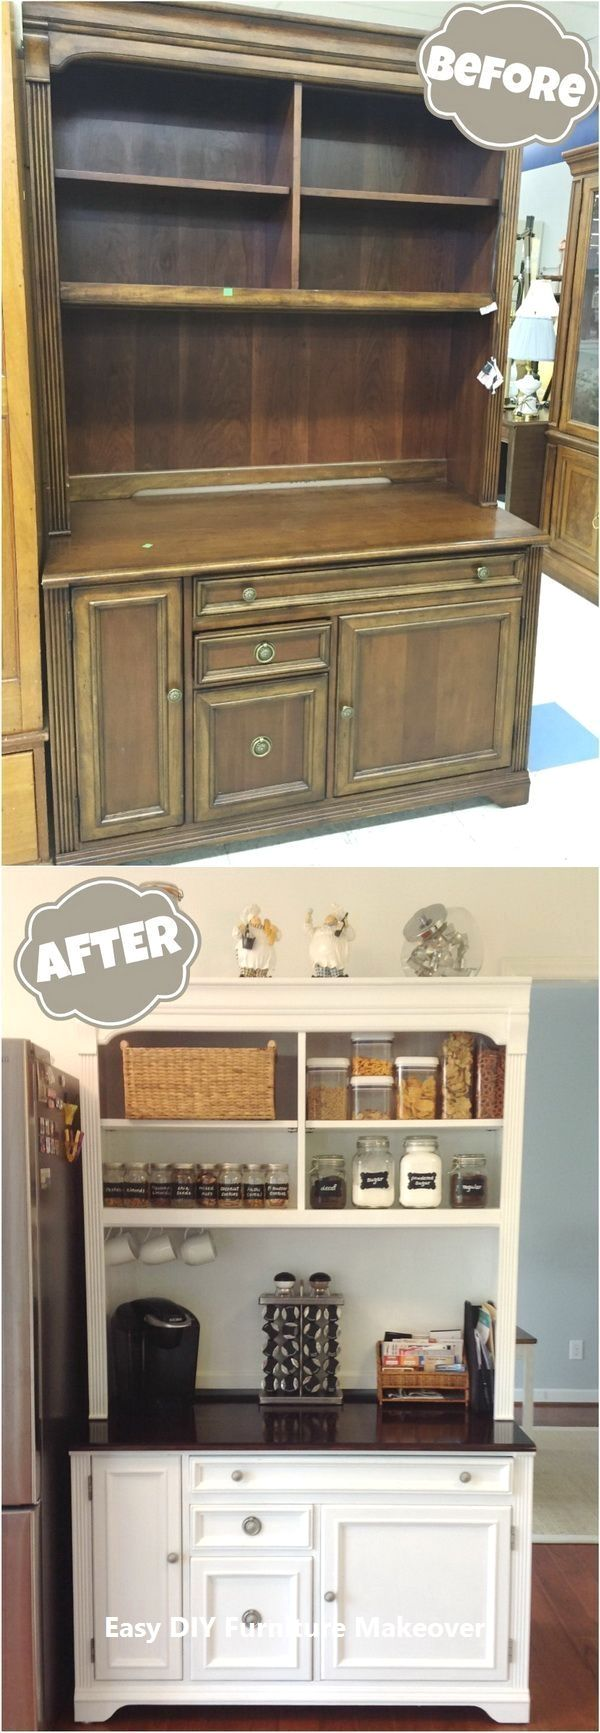 Best of Before & After Furniture Makeovers… #furnitureredos